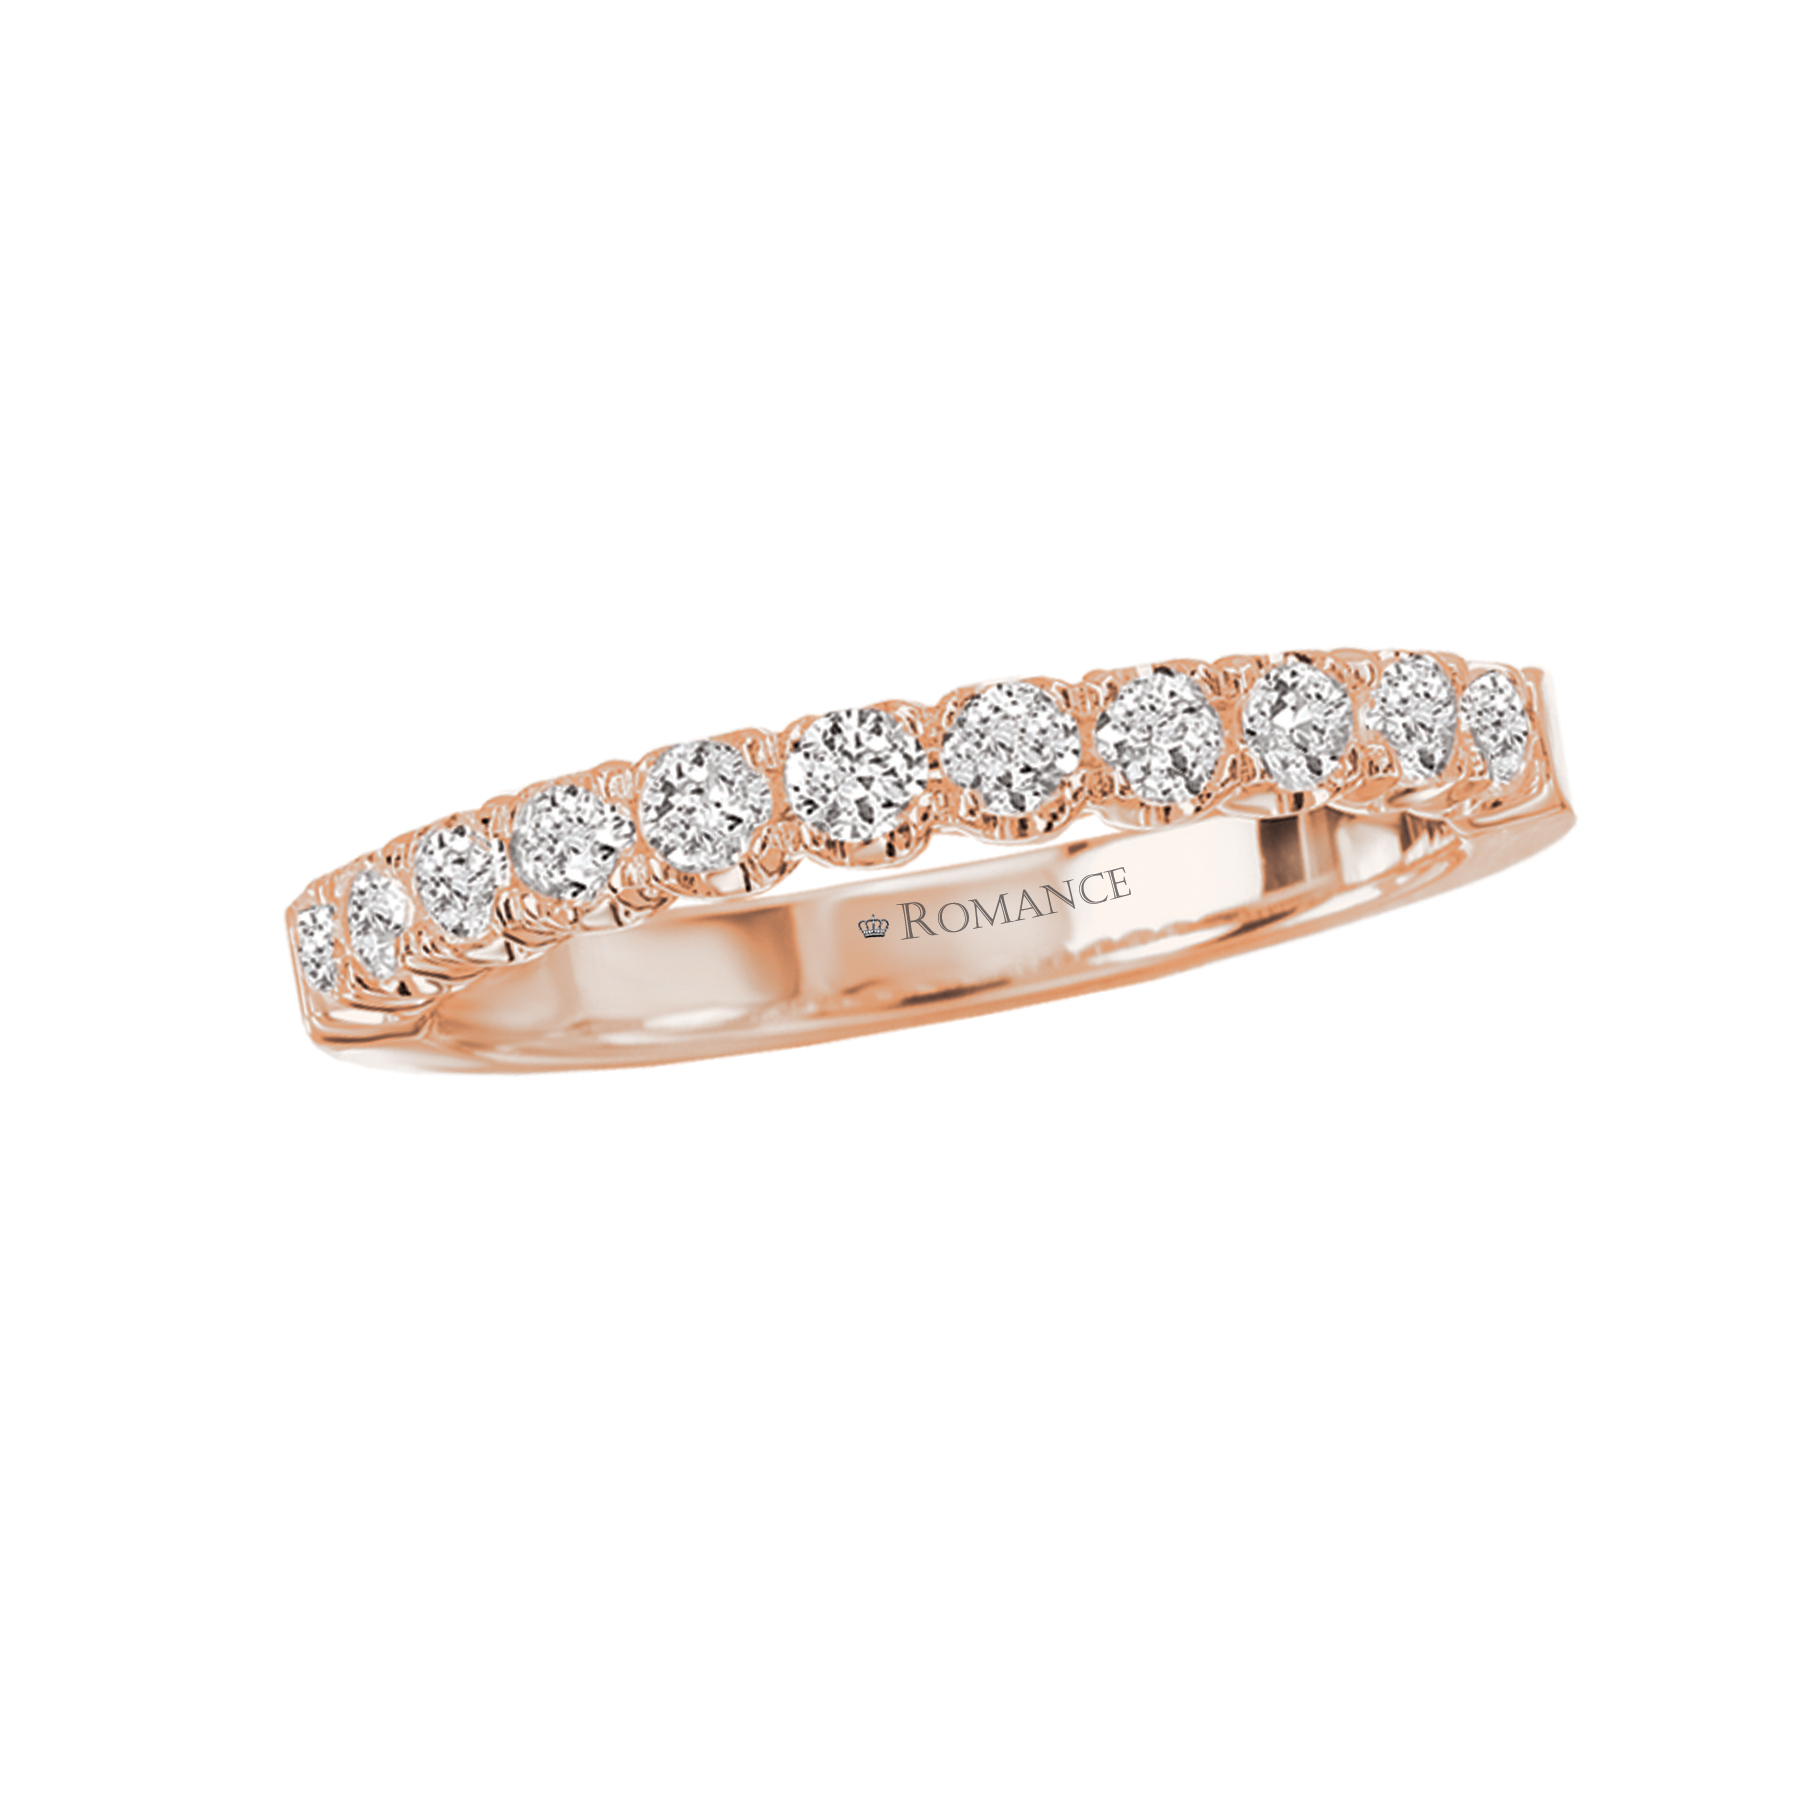 Romance Wedding Bands 117495-WR product image